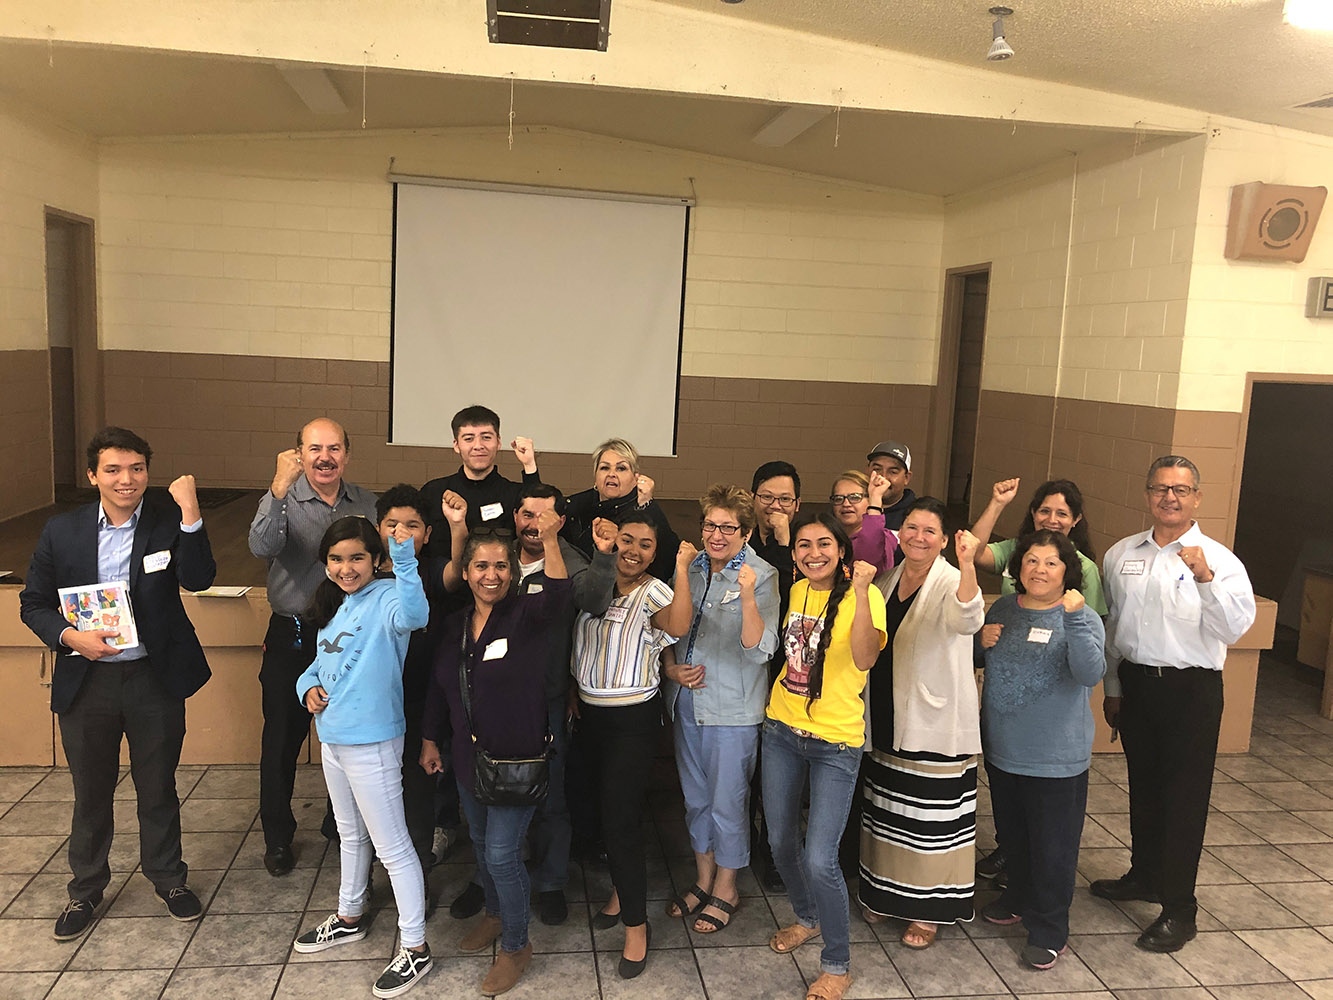 COMMUNITY MEETING – AUGUST 5TH, GONZALES CA GROUP PHOTO